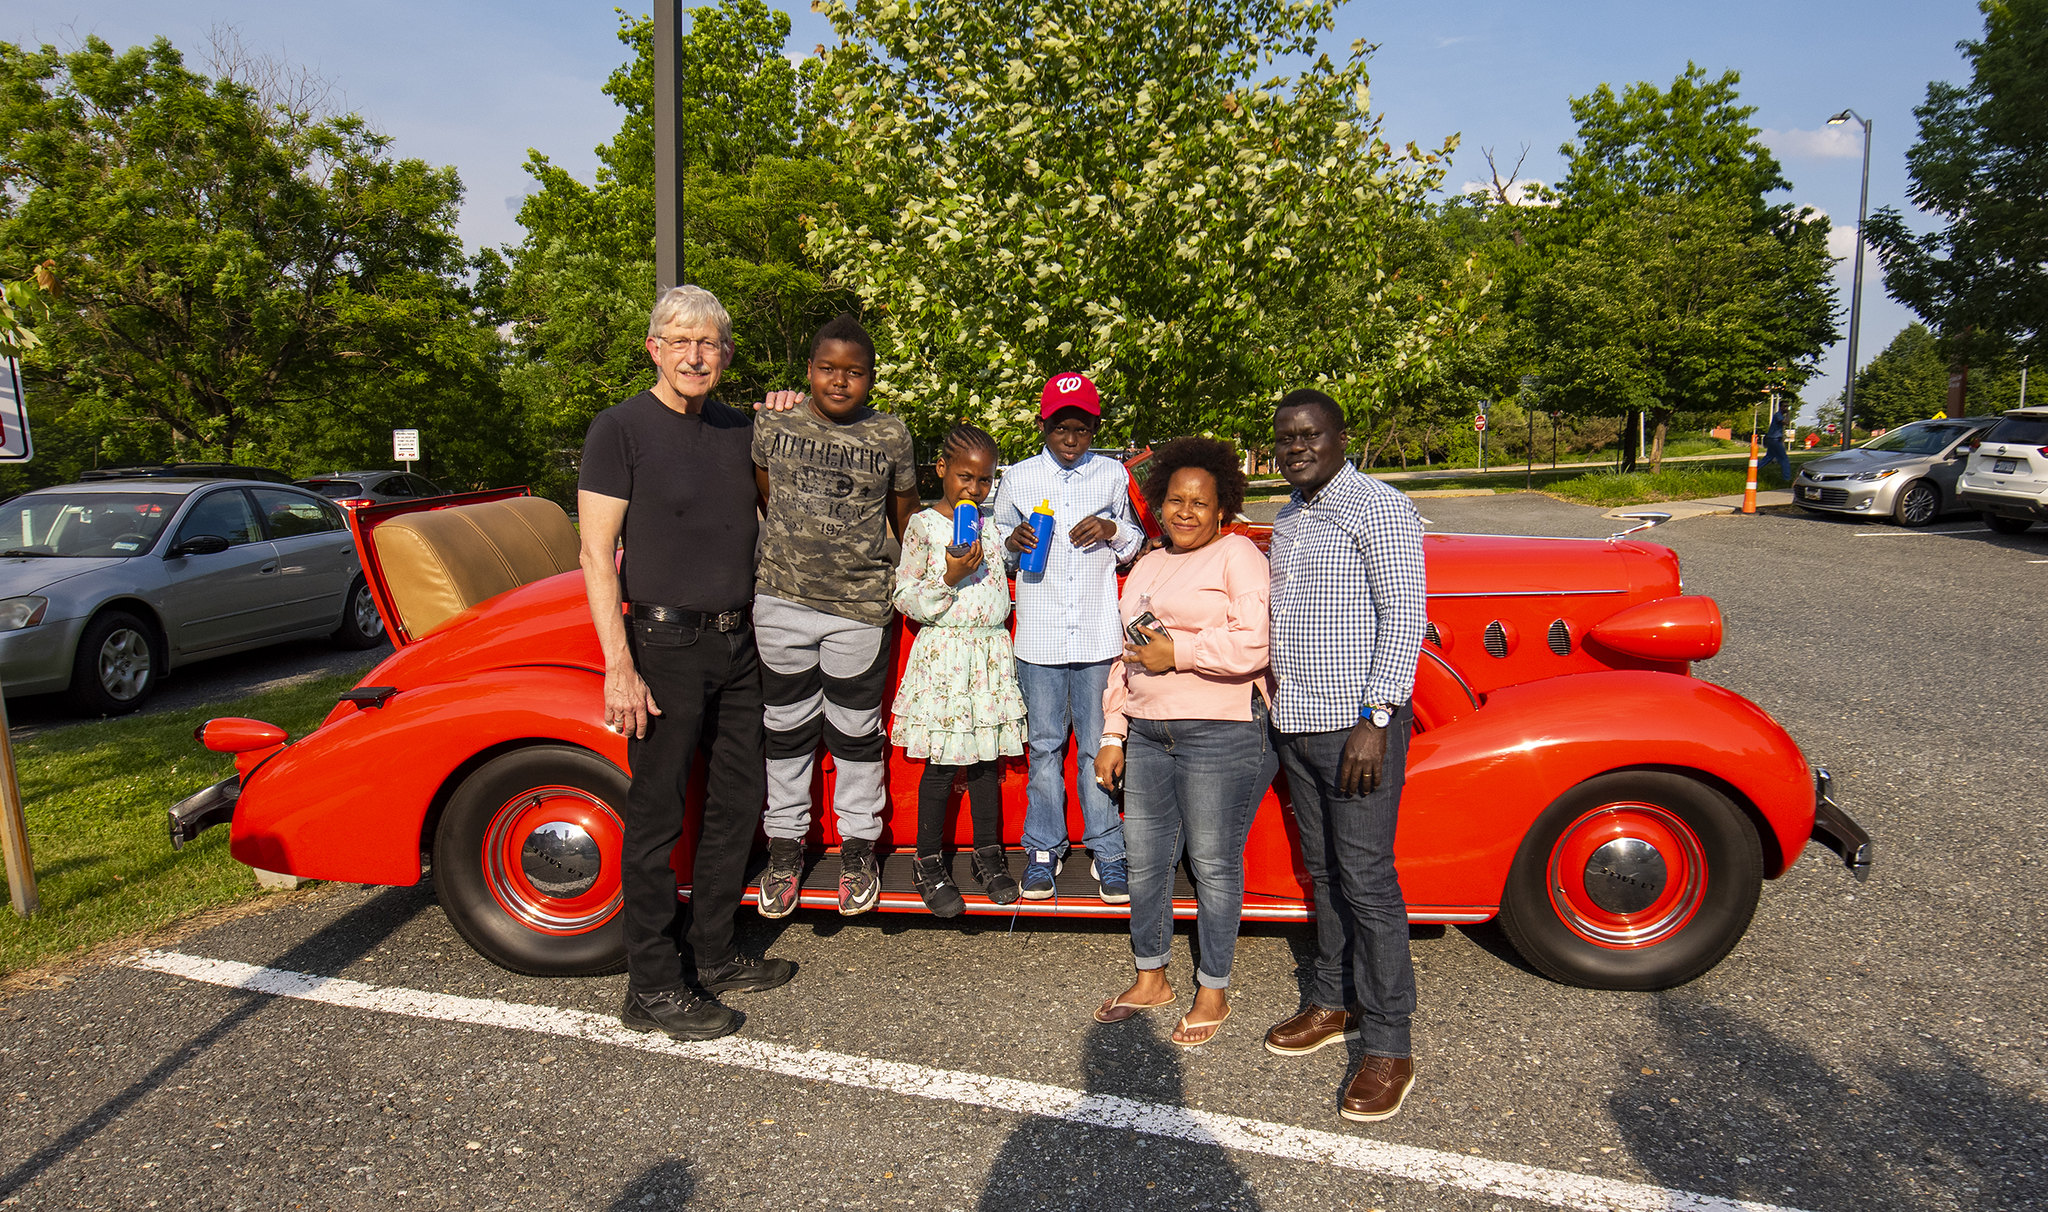 NIH Director Francis Collins, M.D., Ph.D., spends time with NIH pediatric patients staying at The Children's Inn and their families during the second annual car show.